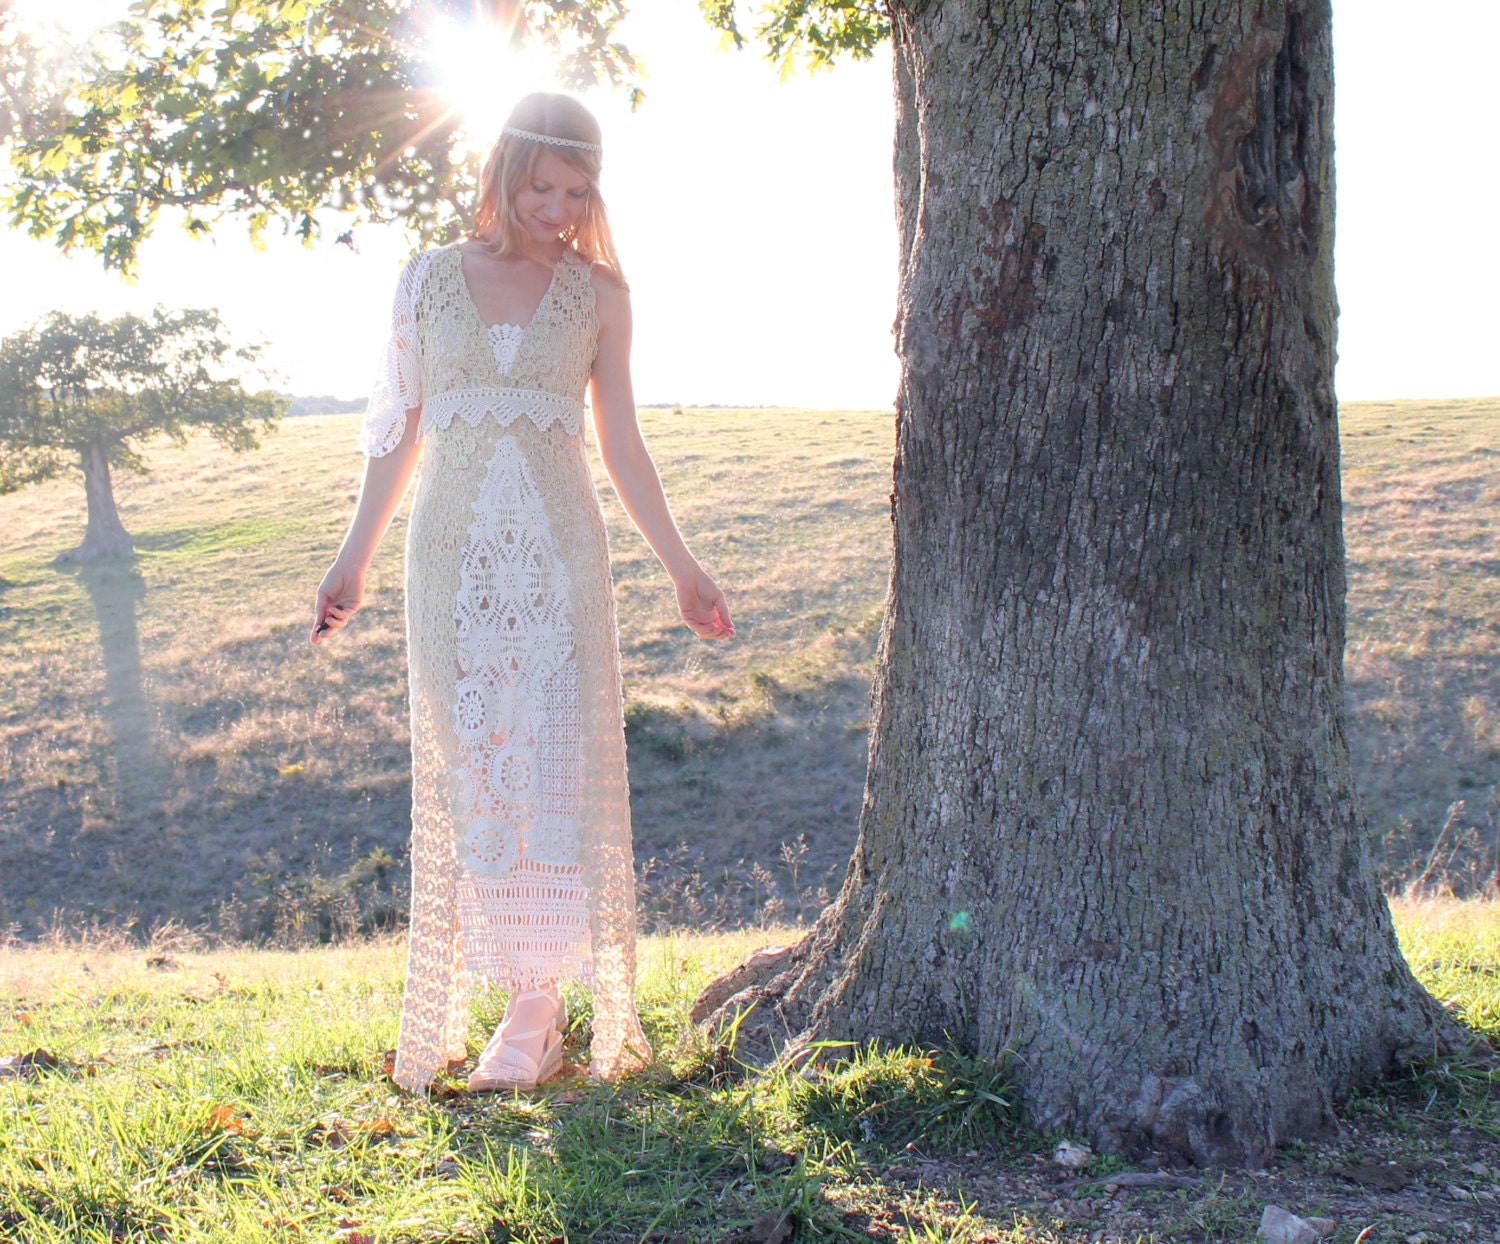 Handmade Eco Wedding Dress in Vintage Cotton by